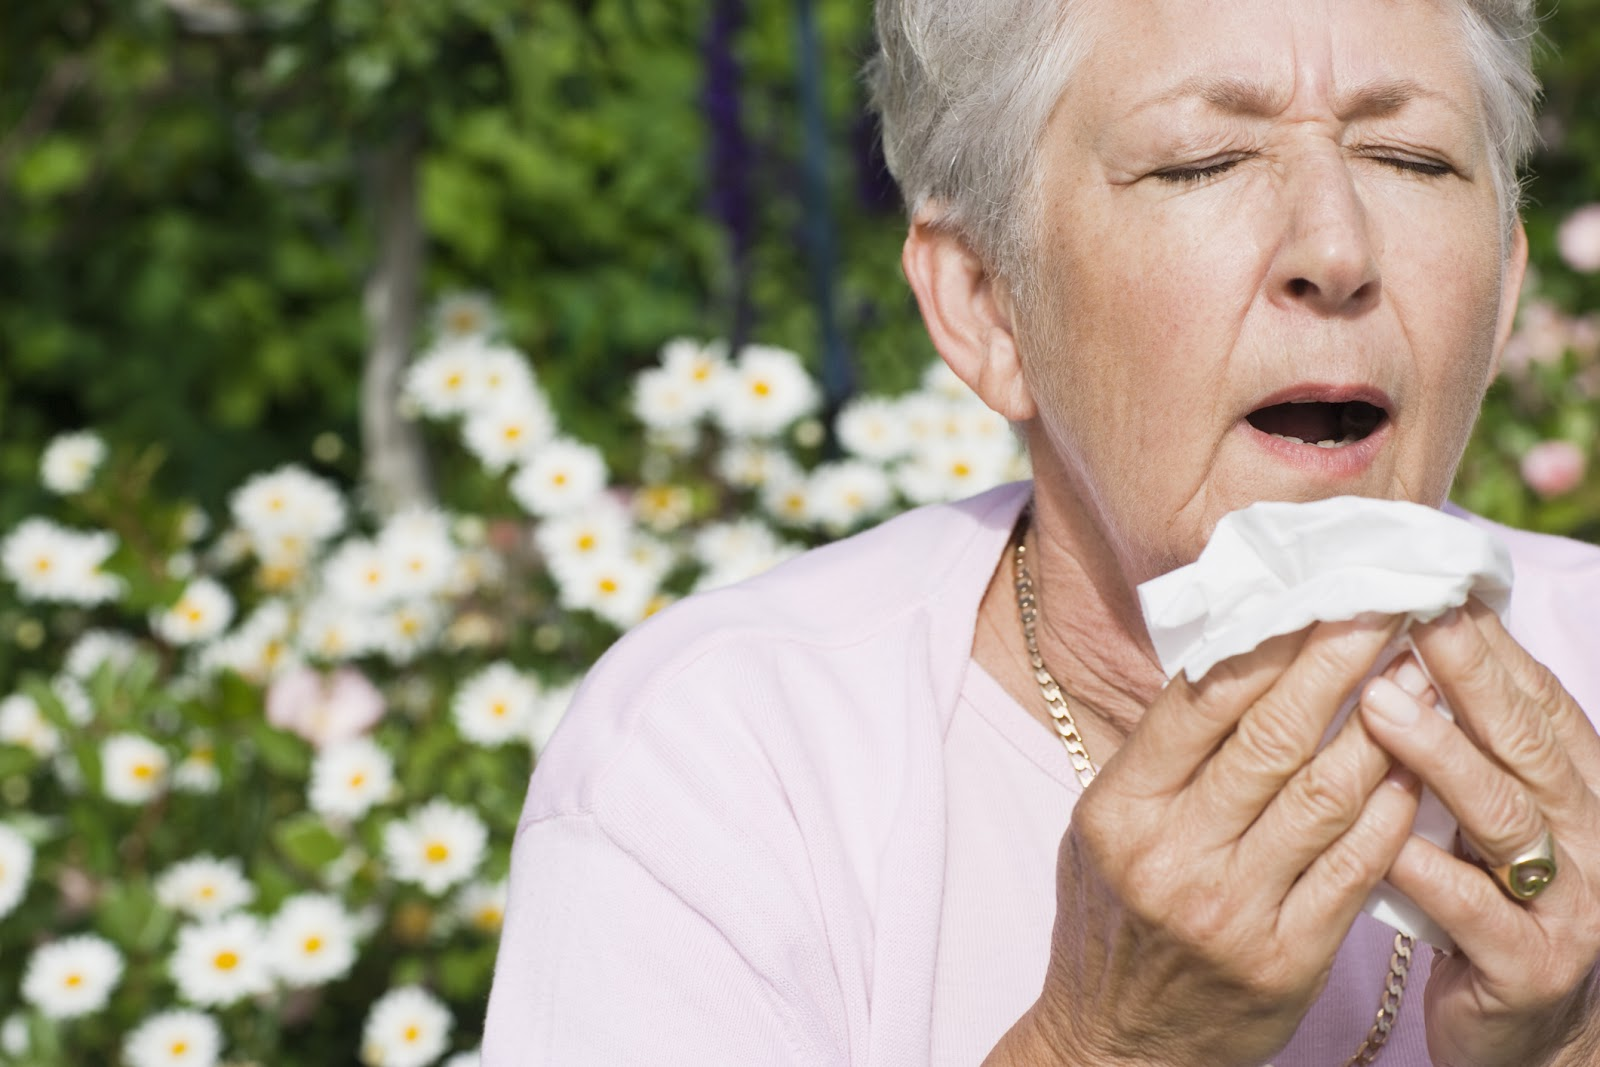 Dealing With Springtime Allergies | Living Healthy, Living Well